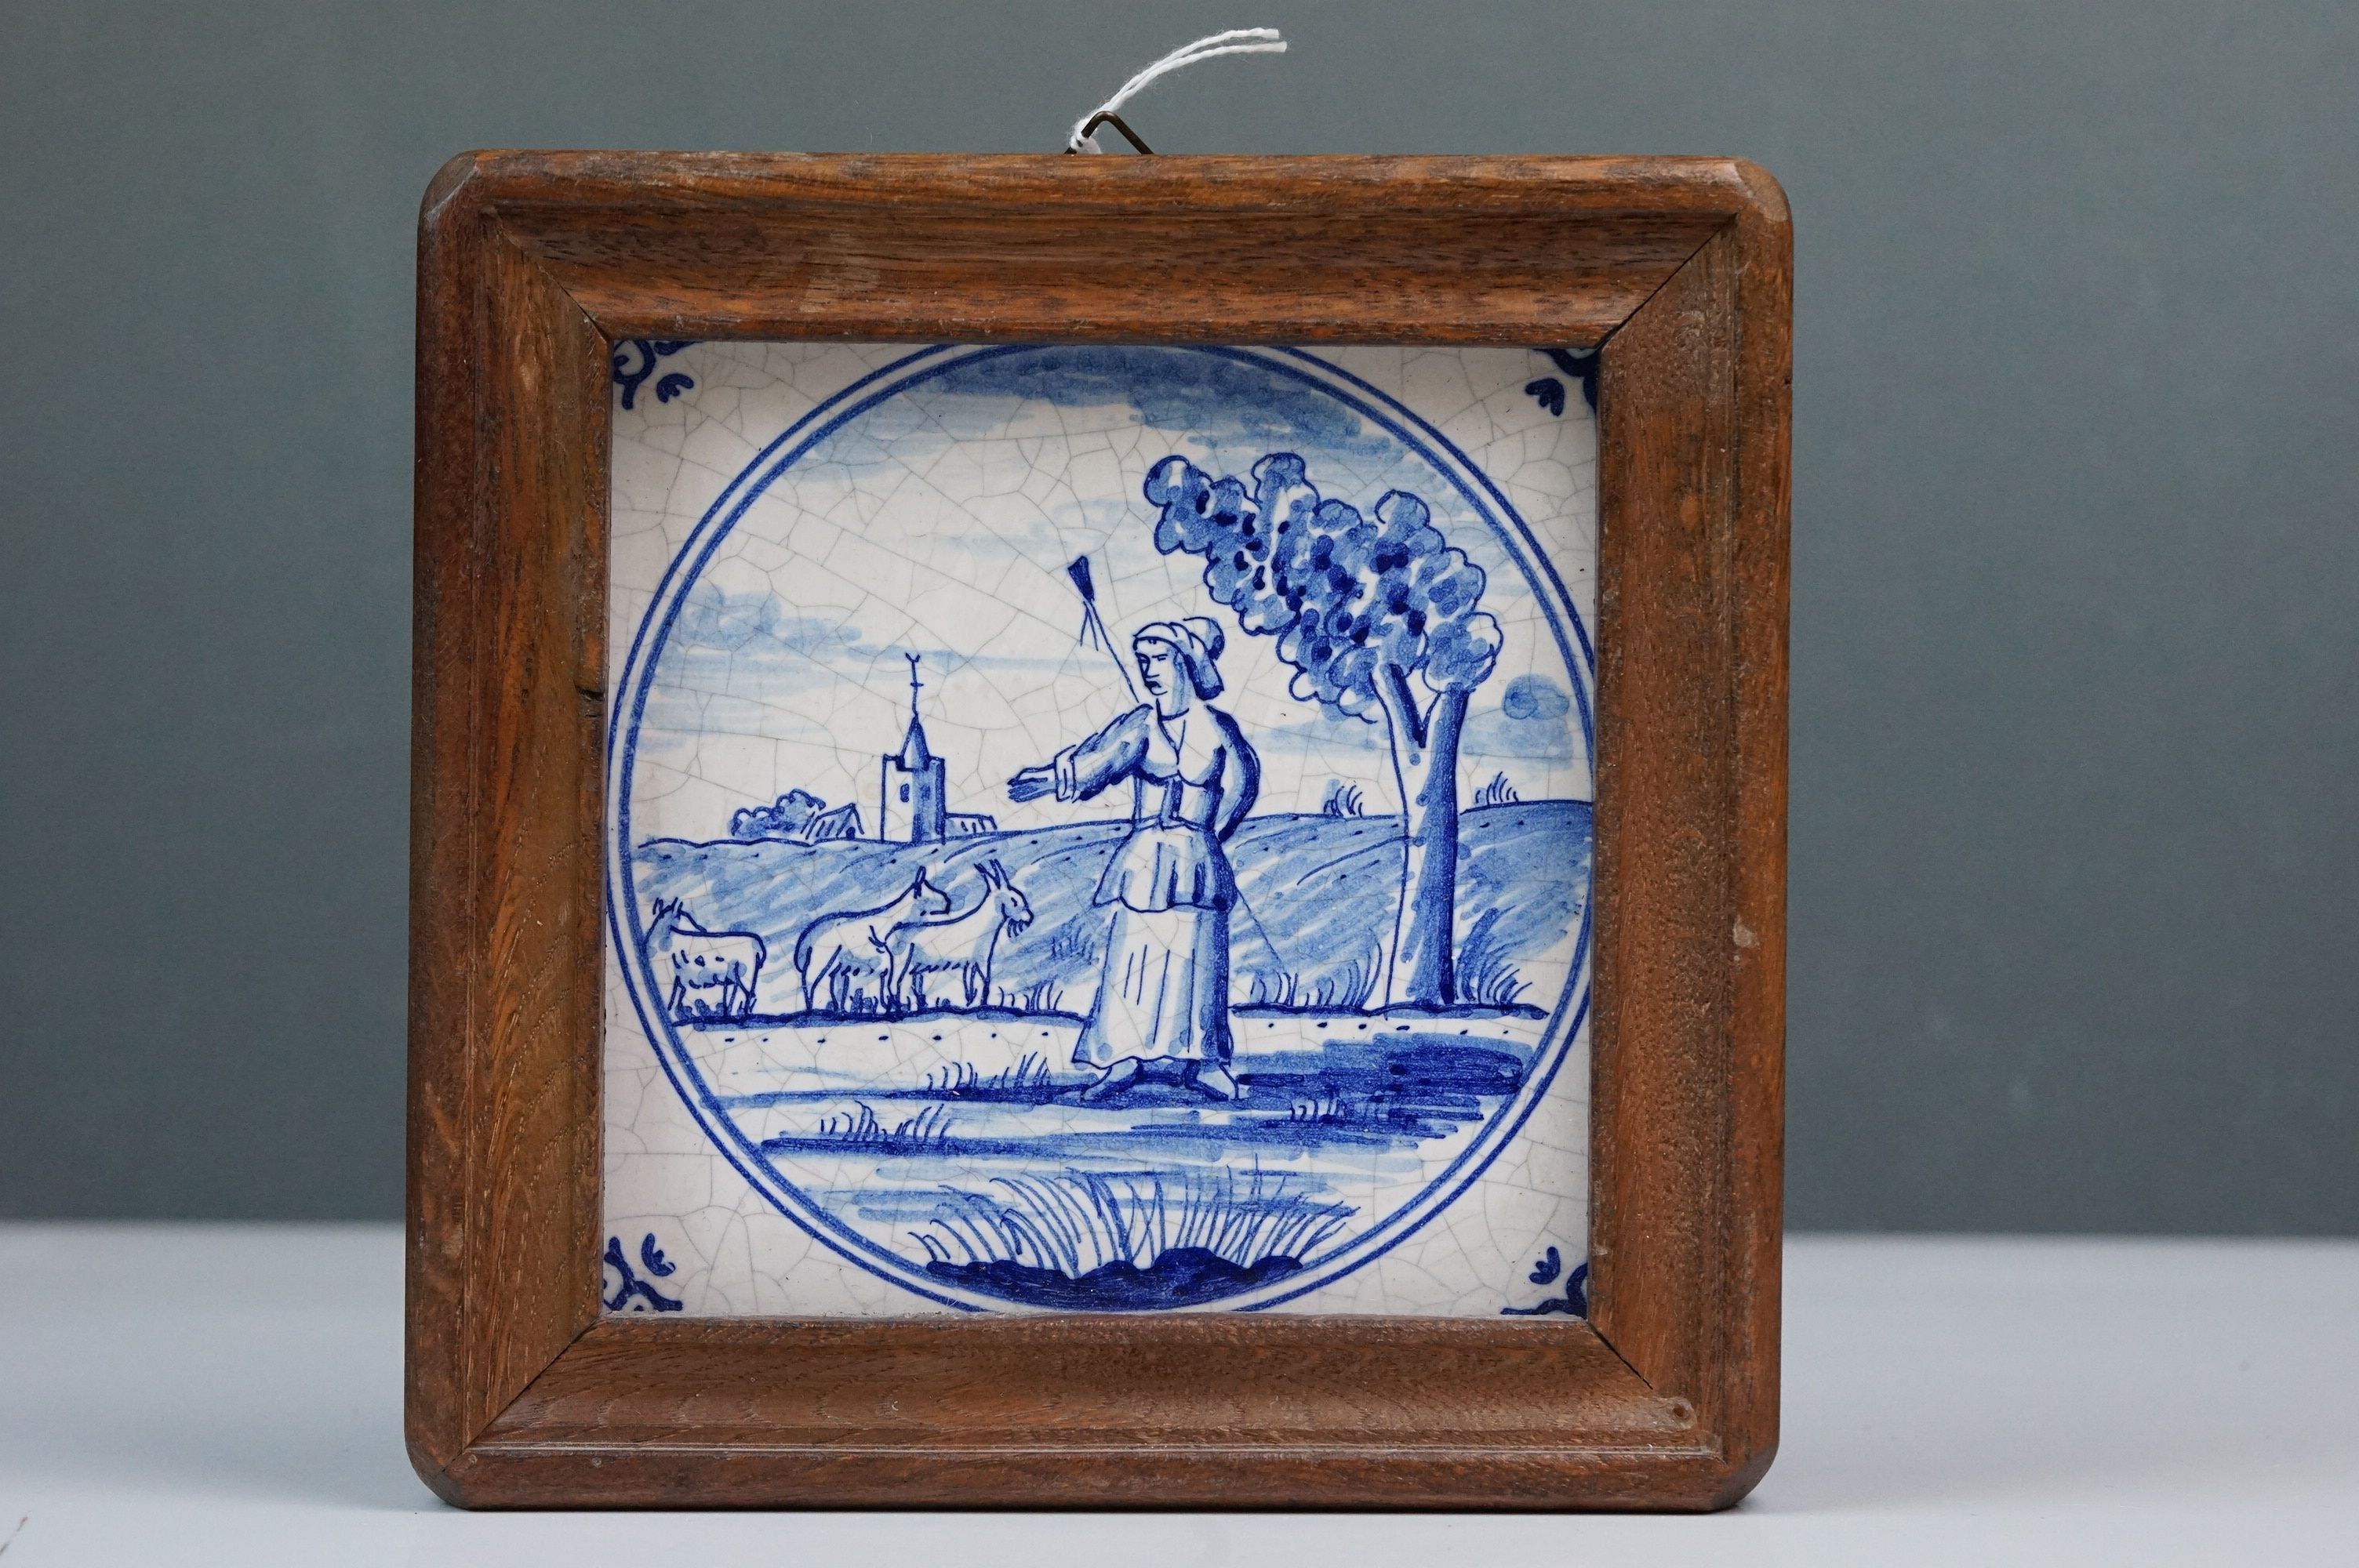 Dutch Delft-style blue and white tile depicting a shepherdess with goats, impressed dove mark to